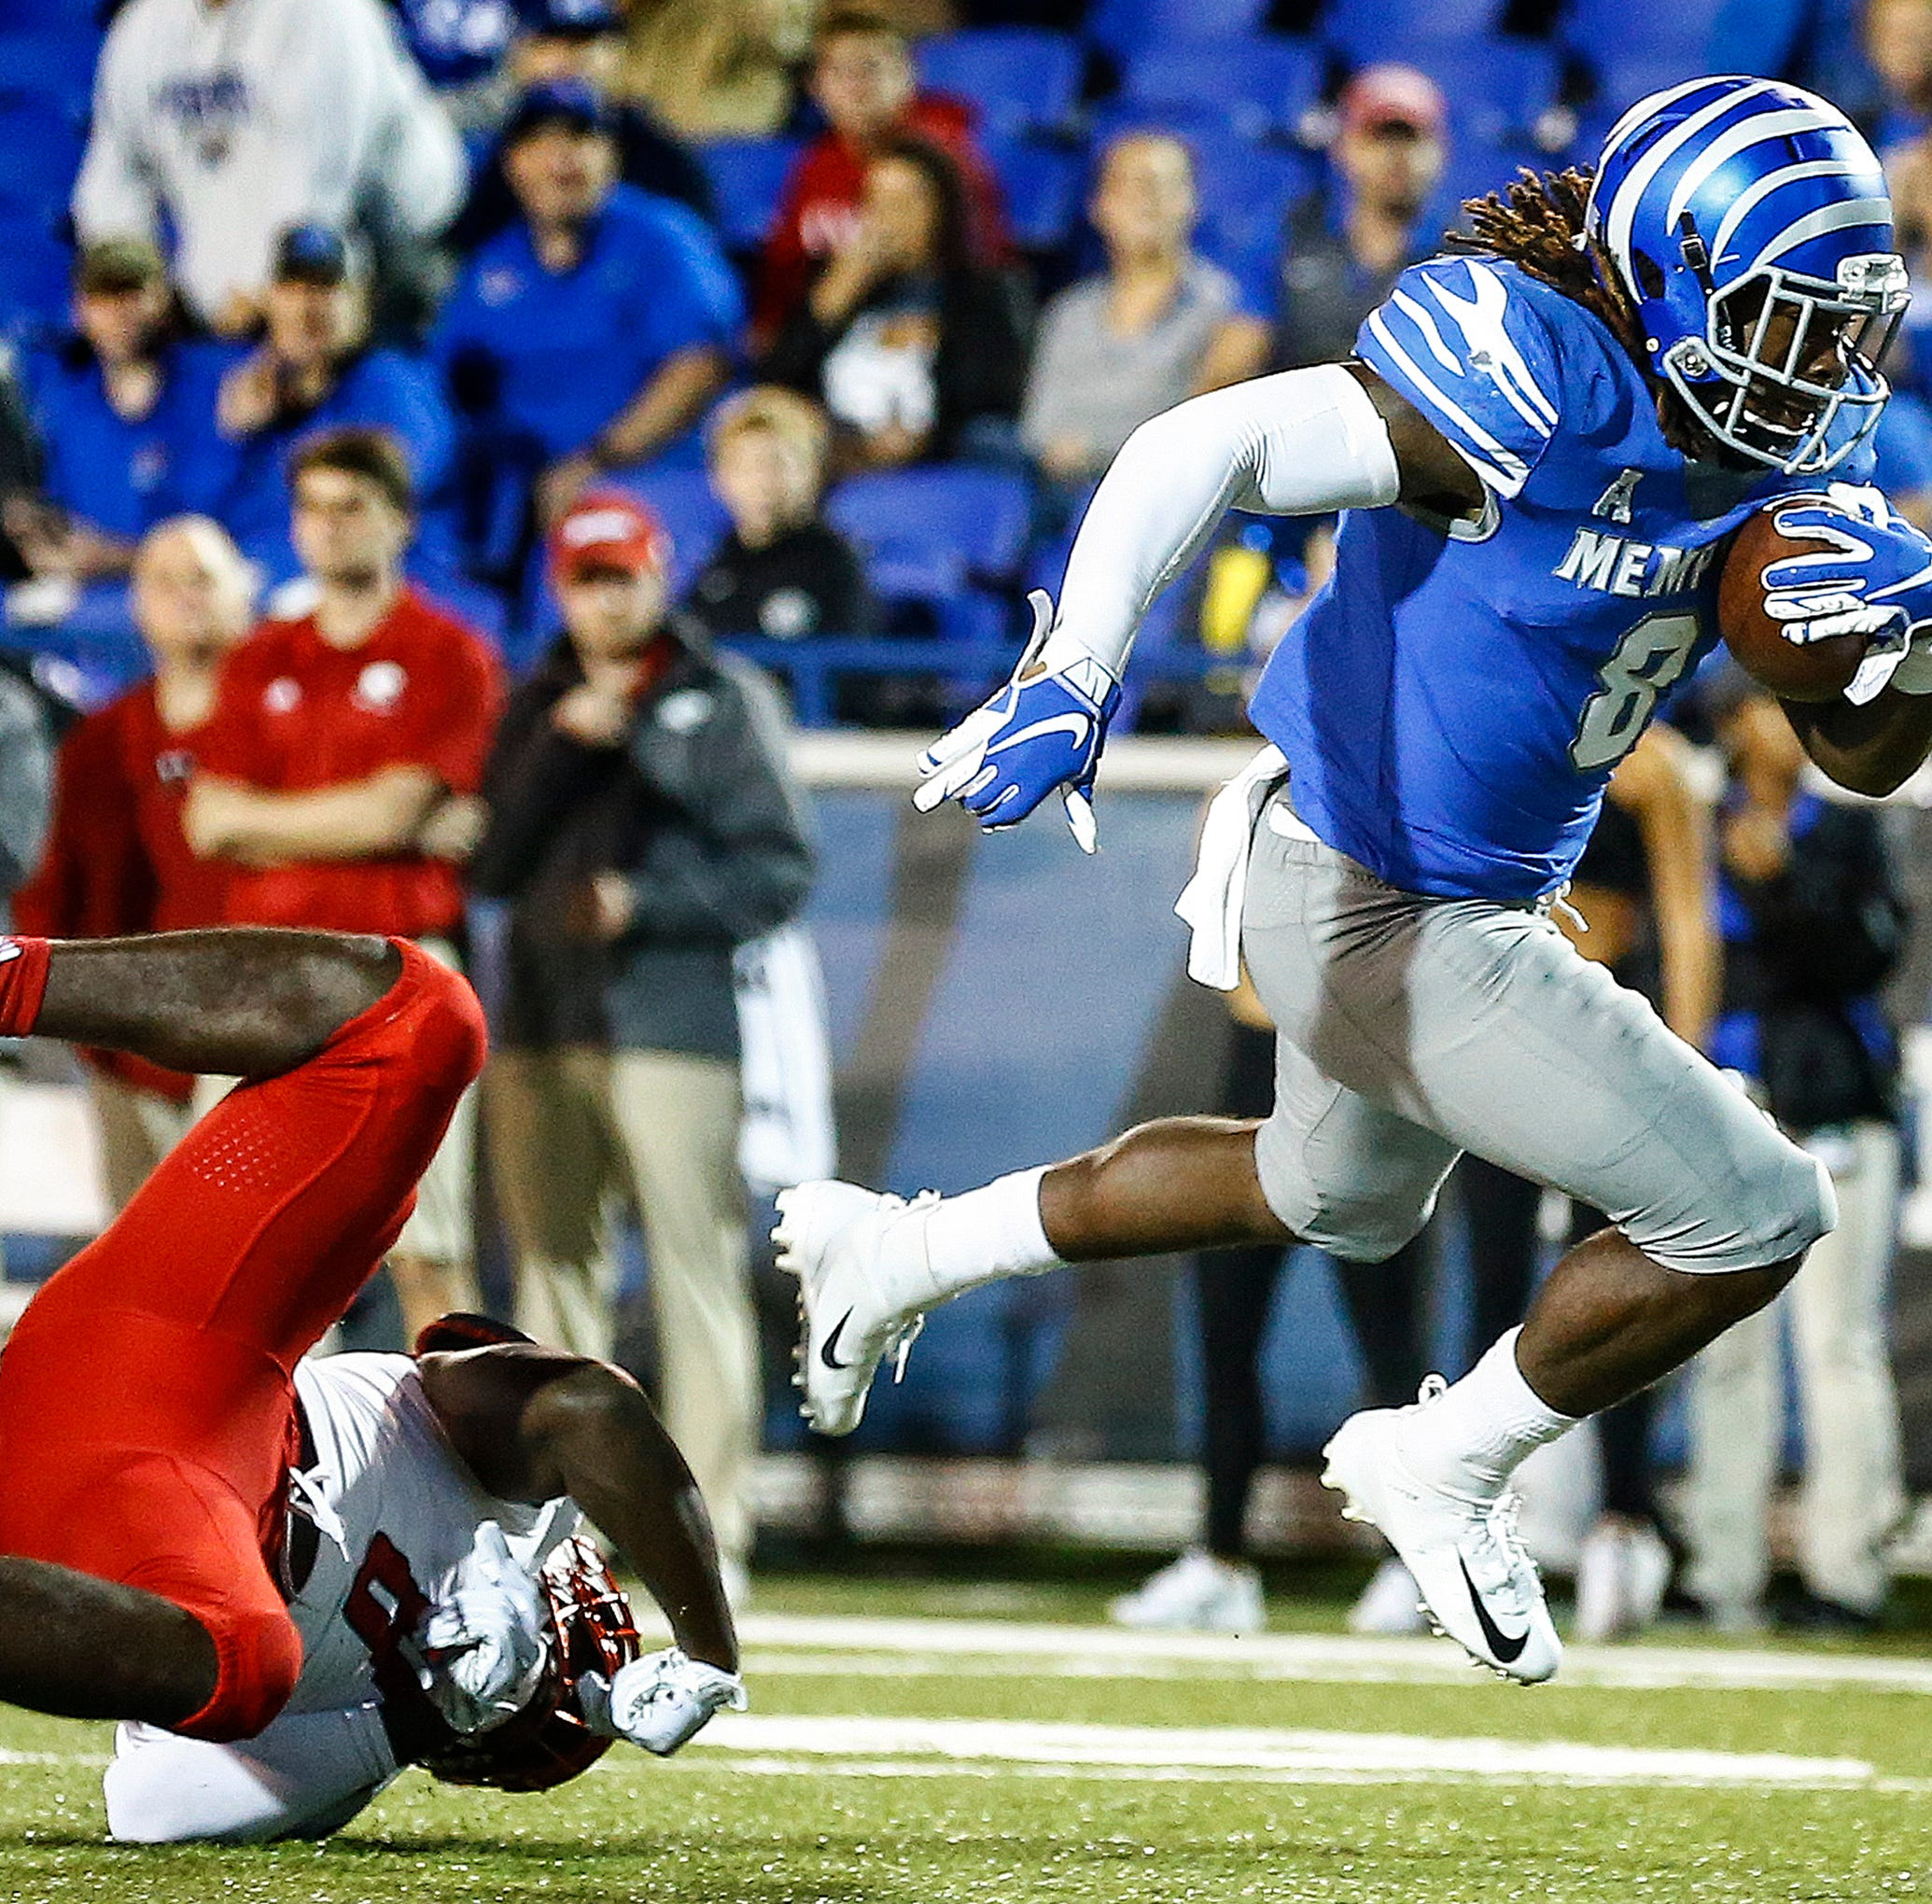 Here's how Memphis dropped South Alabama